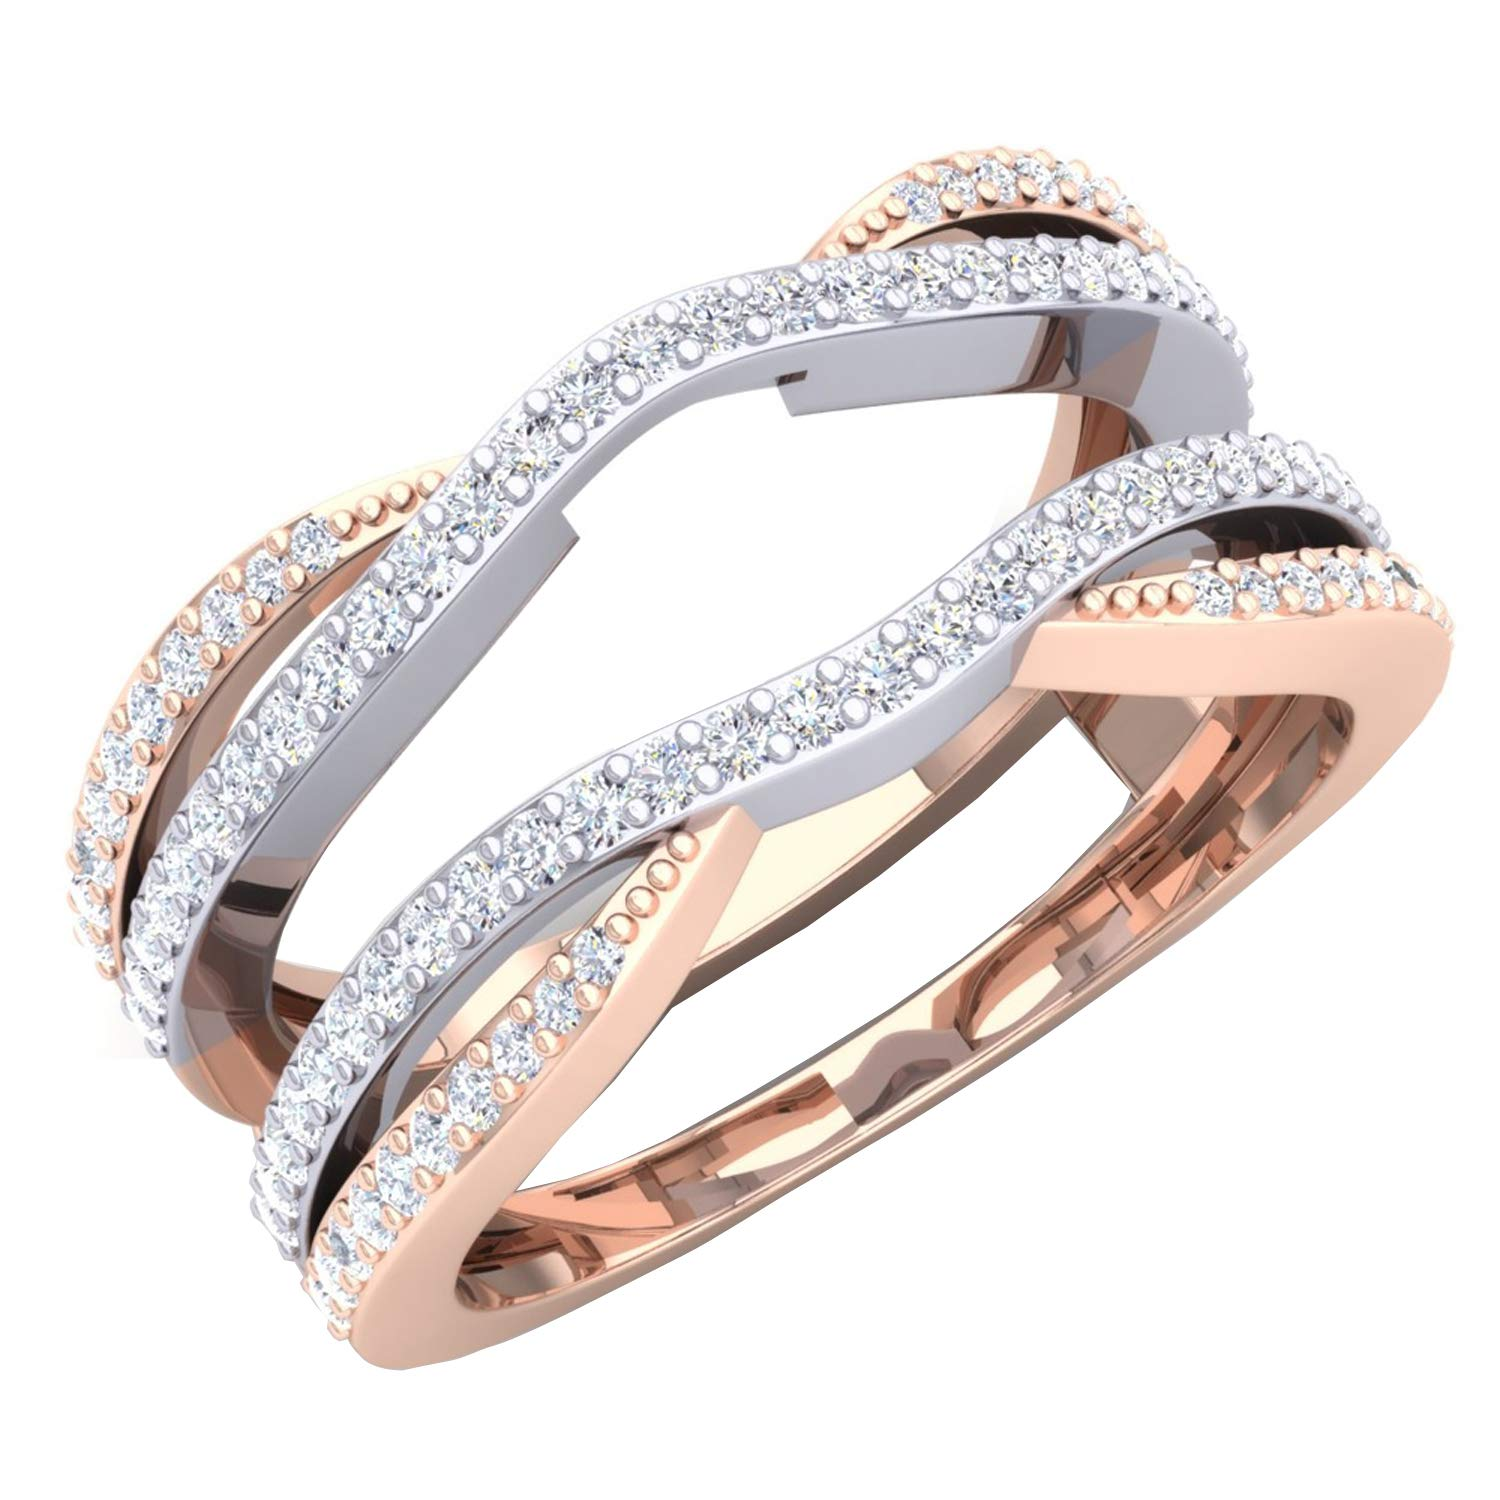 Dazzlingrock Collection 0.50 Carat (ctw) 10K White & Two Tone Diamond Wedding Band Guard Double Ring 1/2 CT, Rose Gold, Size 6 by Dazzlingrock Collection